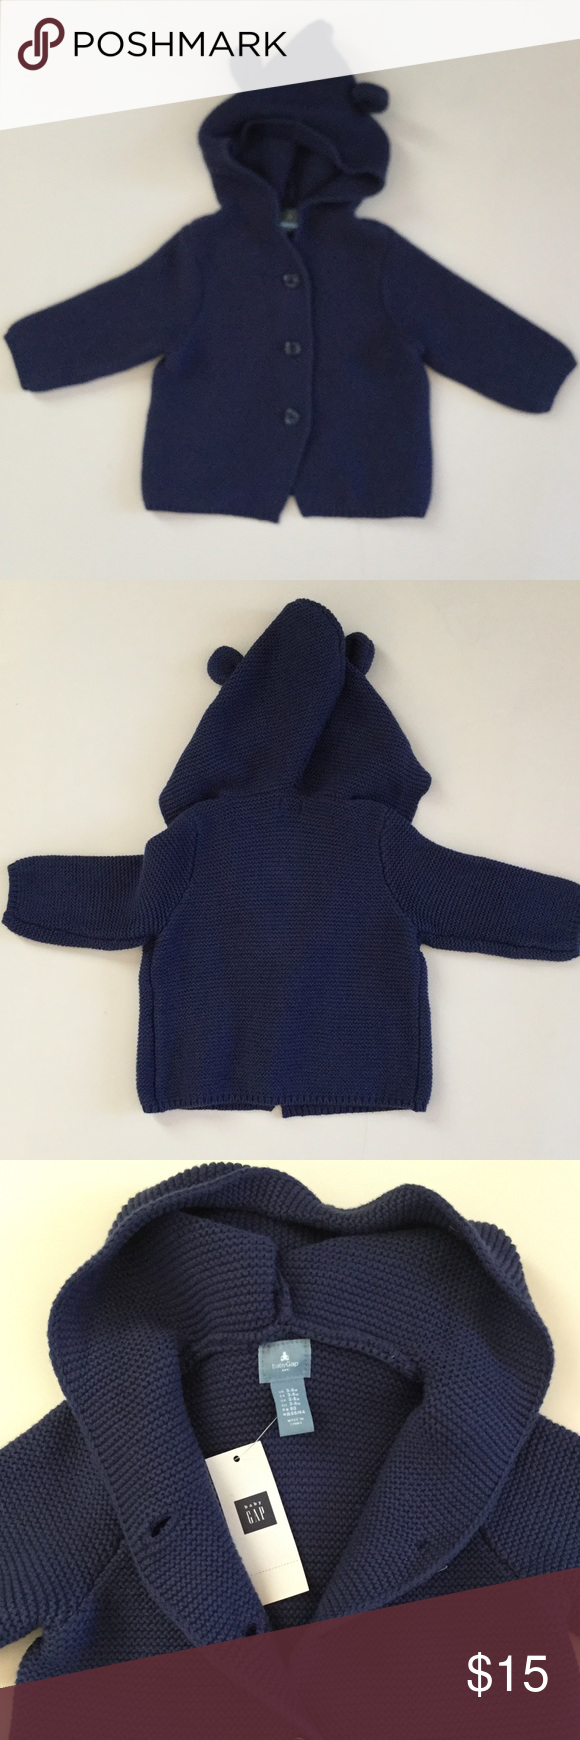 New with tags BABY GAP Hooded button up | Babies